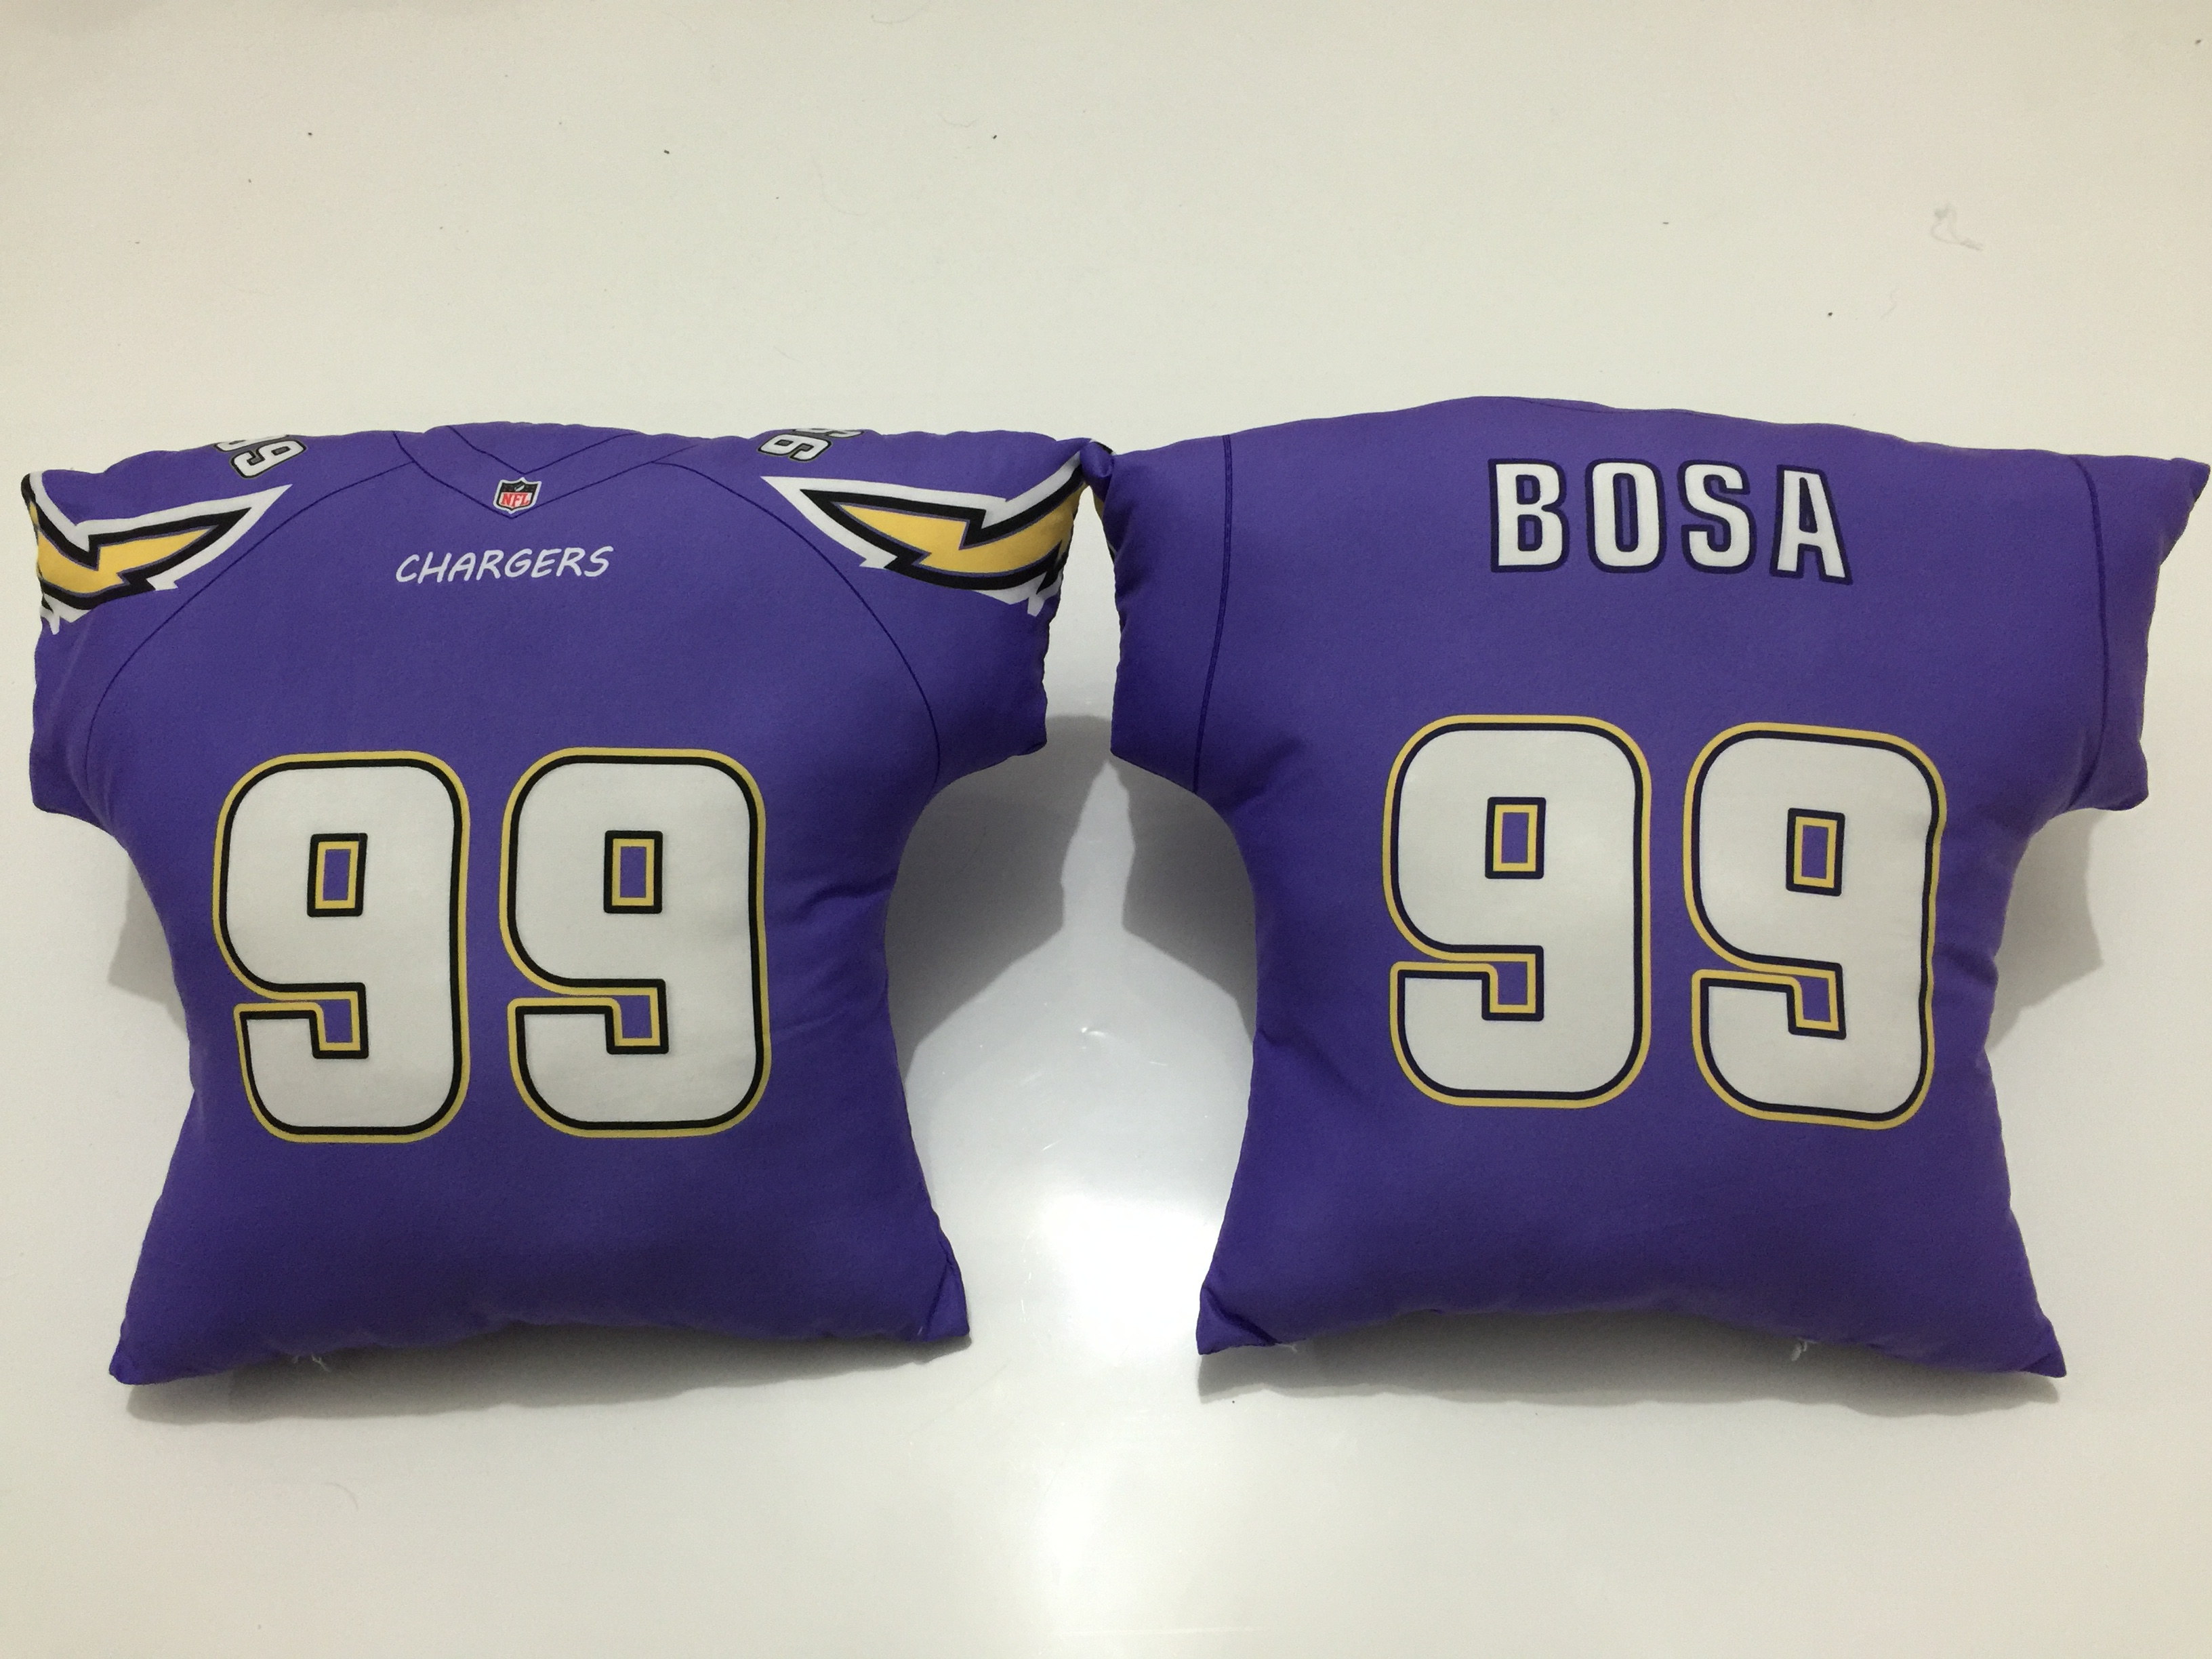 San Diego Chargers 99 Joey Bosa Purple NFL Pillow